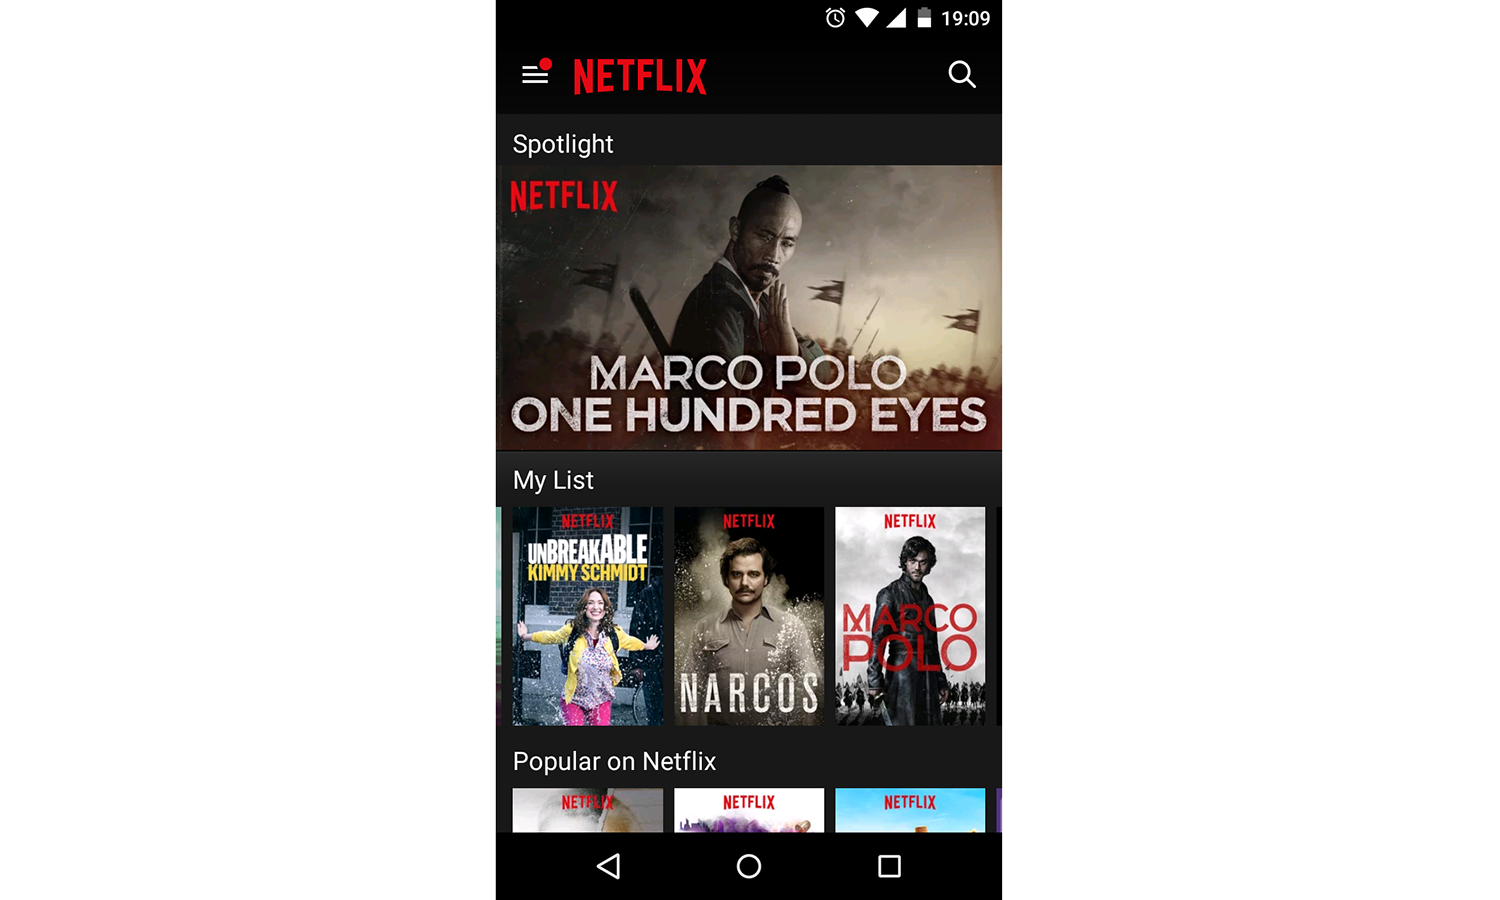 Netflix expanded to 130 countries, including Pakistan, where the app for smartphones is now available on the Google Play store. ─ Photo: Hufsa Chaudhry